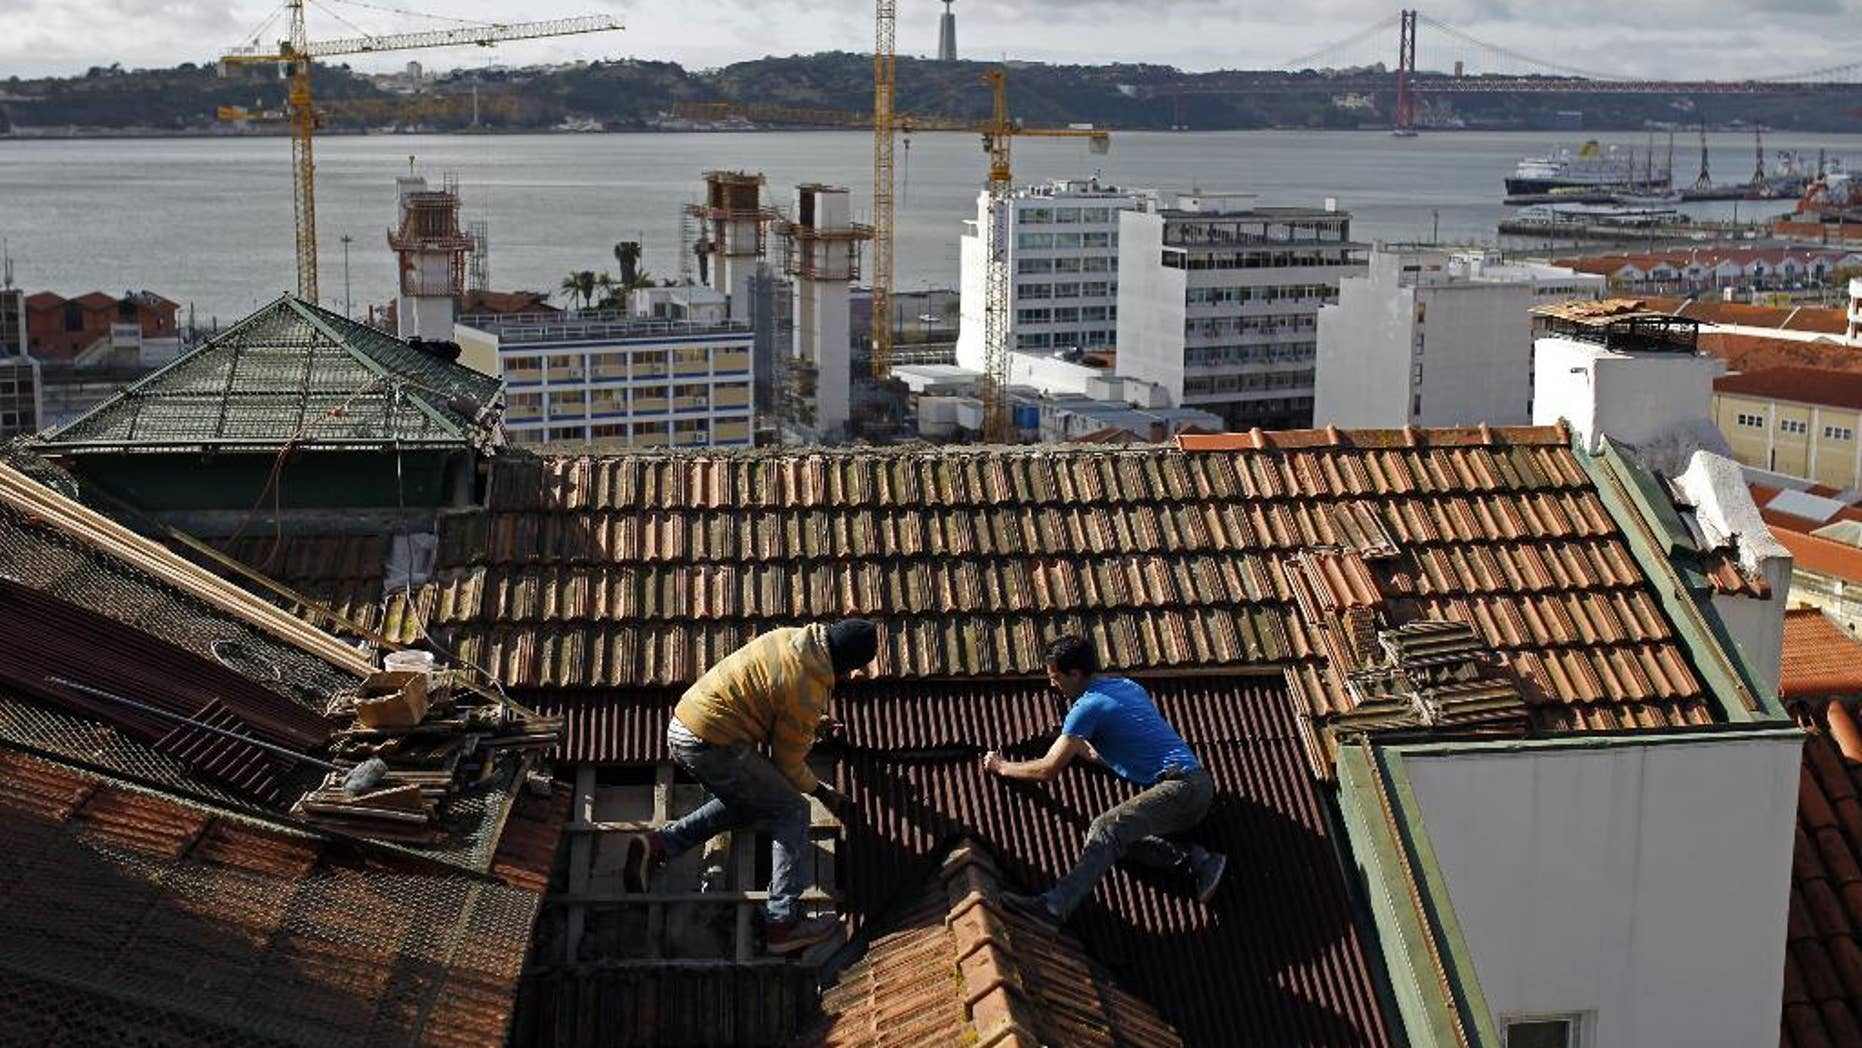 FILE - In this Feb. 28, 2014 file photo, construction workers repair the roof of a building in Lisbon. The country's construction sector collapsed amid the financial crisis, which saw the state take a 78 billion-euro ($87 billion) bailout in 2011. The number of construction workers has more than halved from 612,000 in 2005 to roughly 277,000. (AP Photo/Francisco Seco)